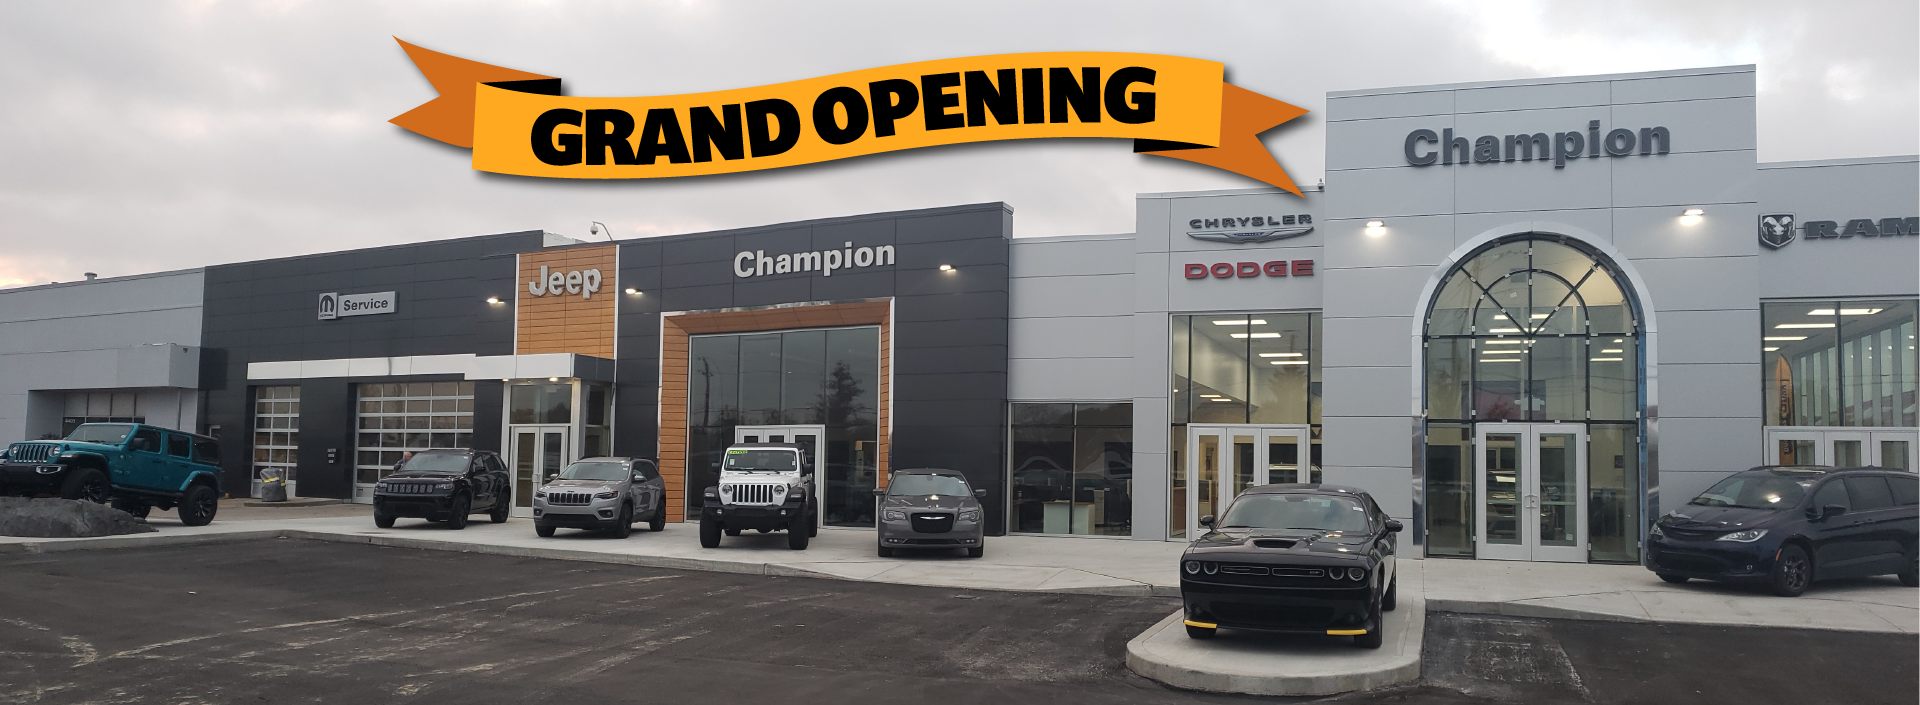 Champion New Storefront Grand Opening